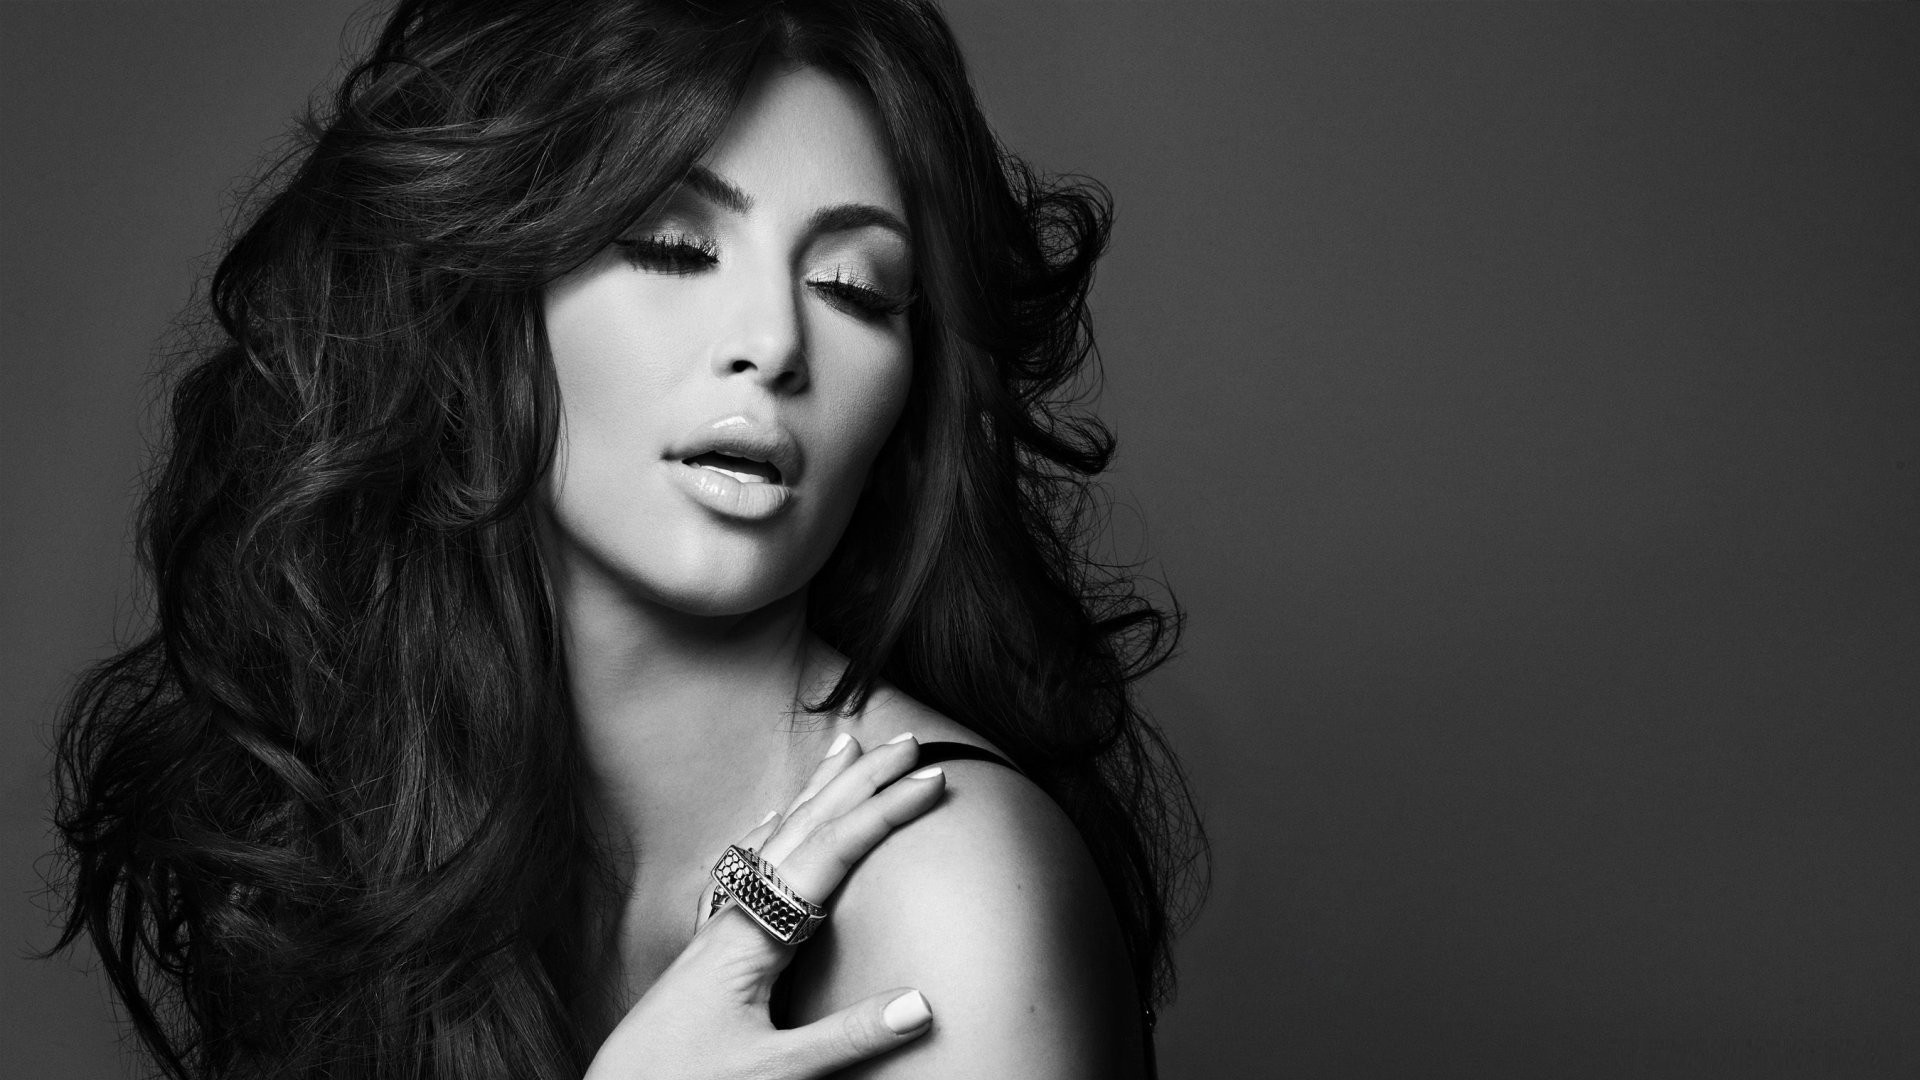 Kim Kardashian Wallpapers HD 1920x1080